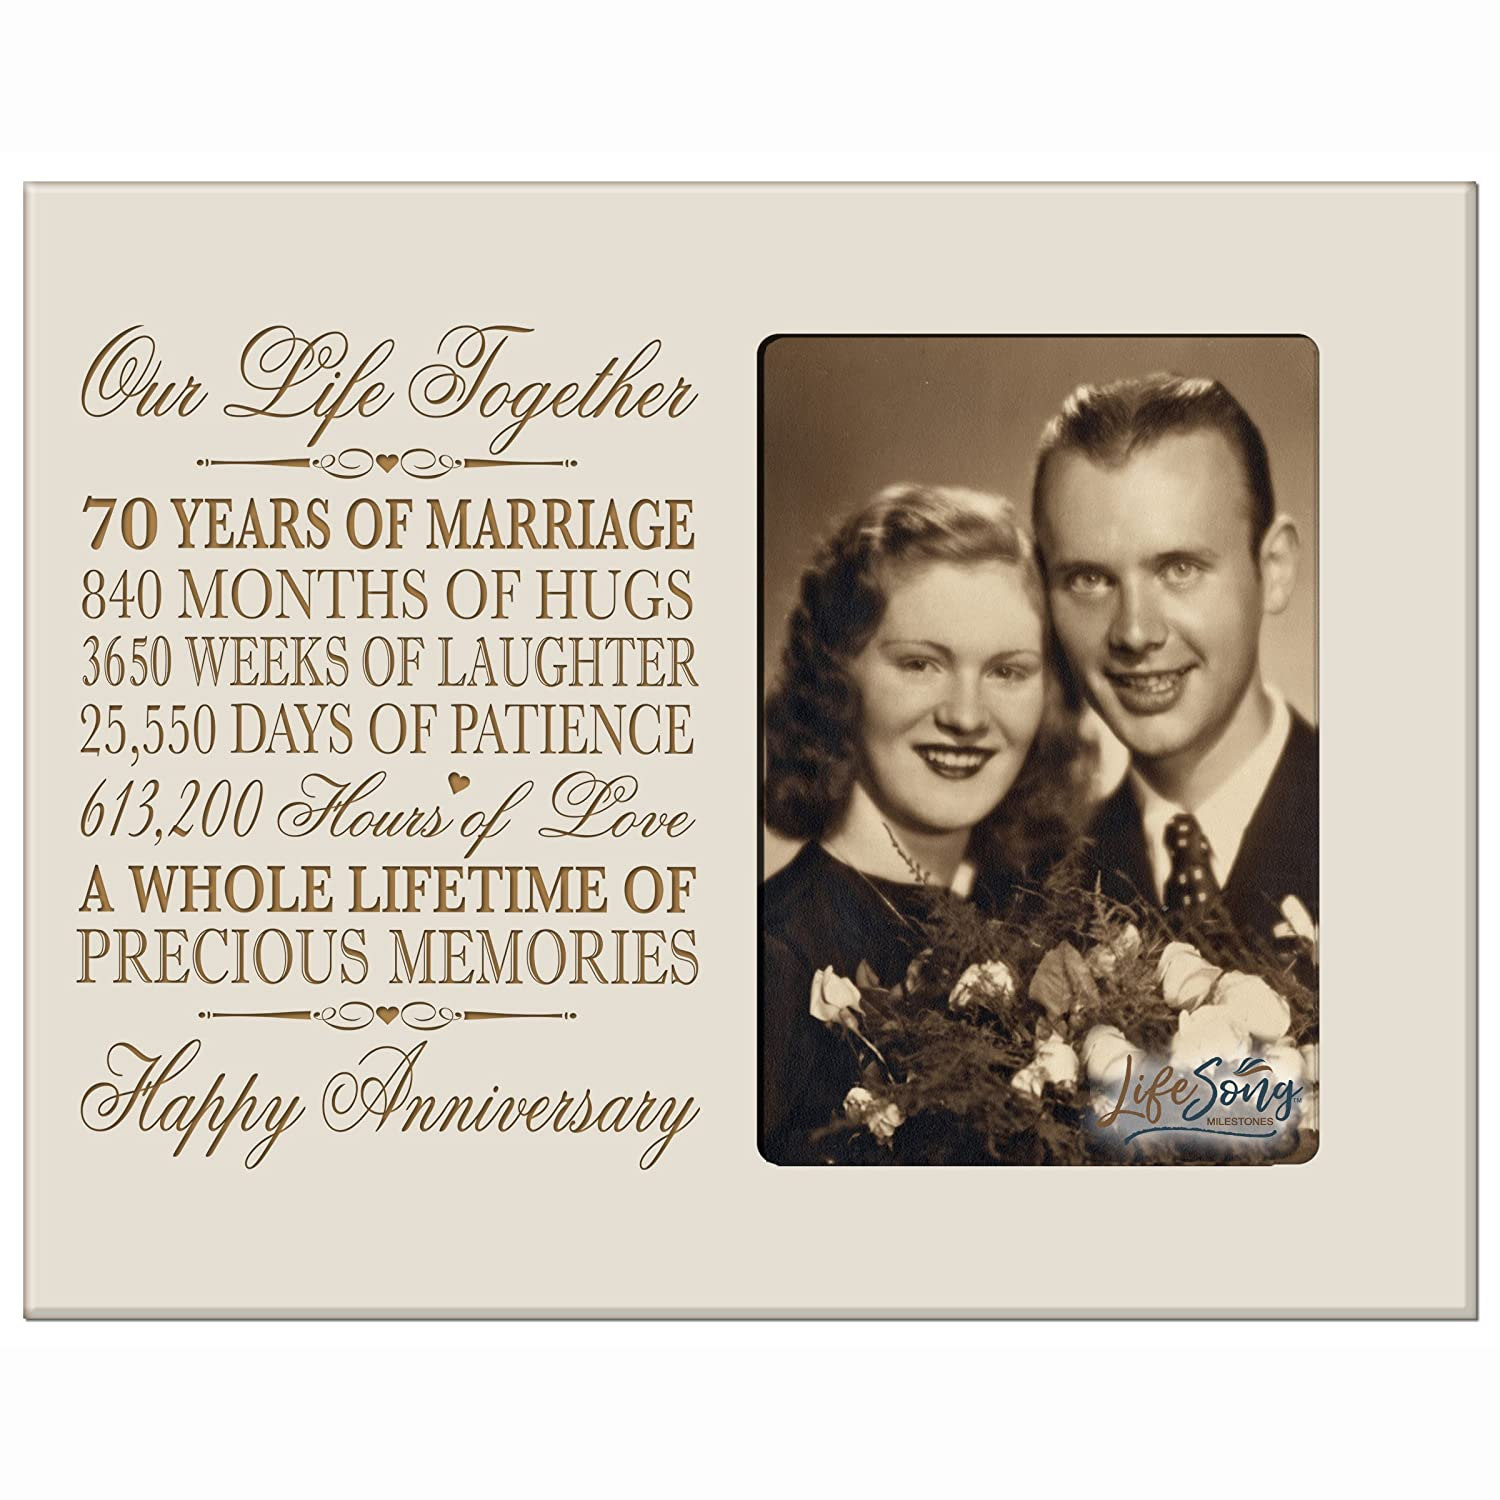 70th Wedding Anniversary.Lifesong Milestones 70th For Her Him 70 Year Wedding For Couple Parents Celebration Gift Picture Frame Holds 1 4x6 Photo 8 H X 10 W Ivory